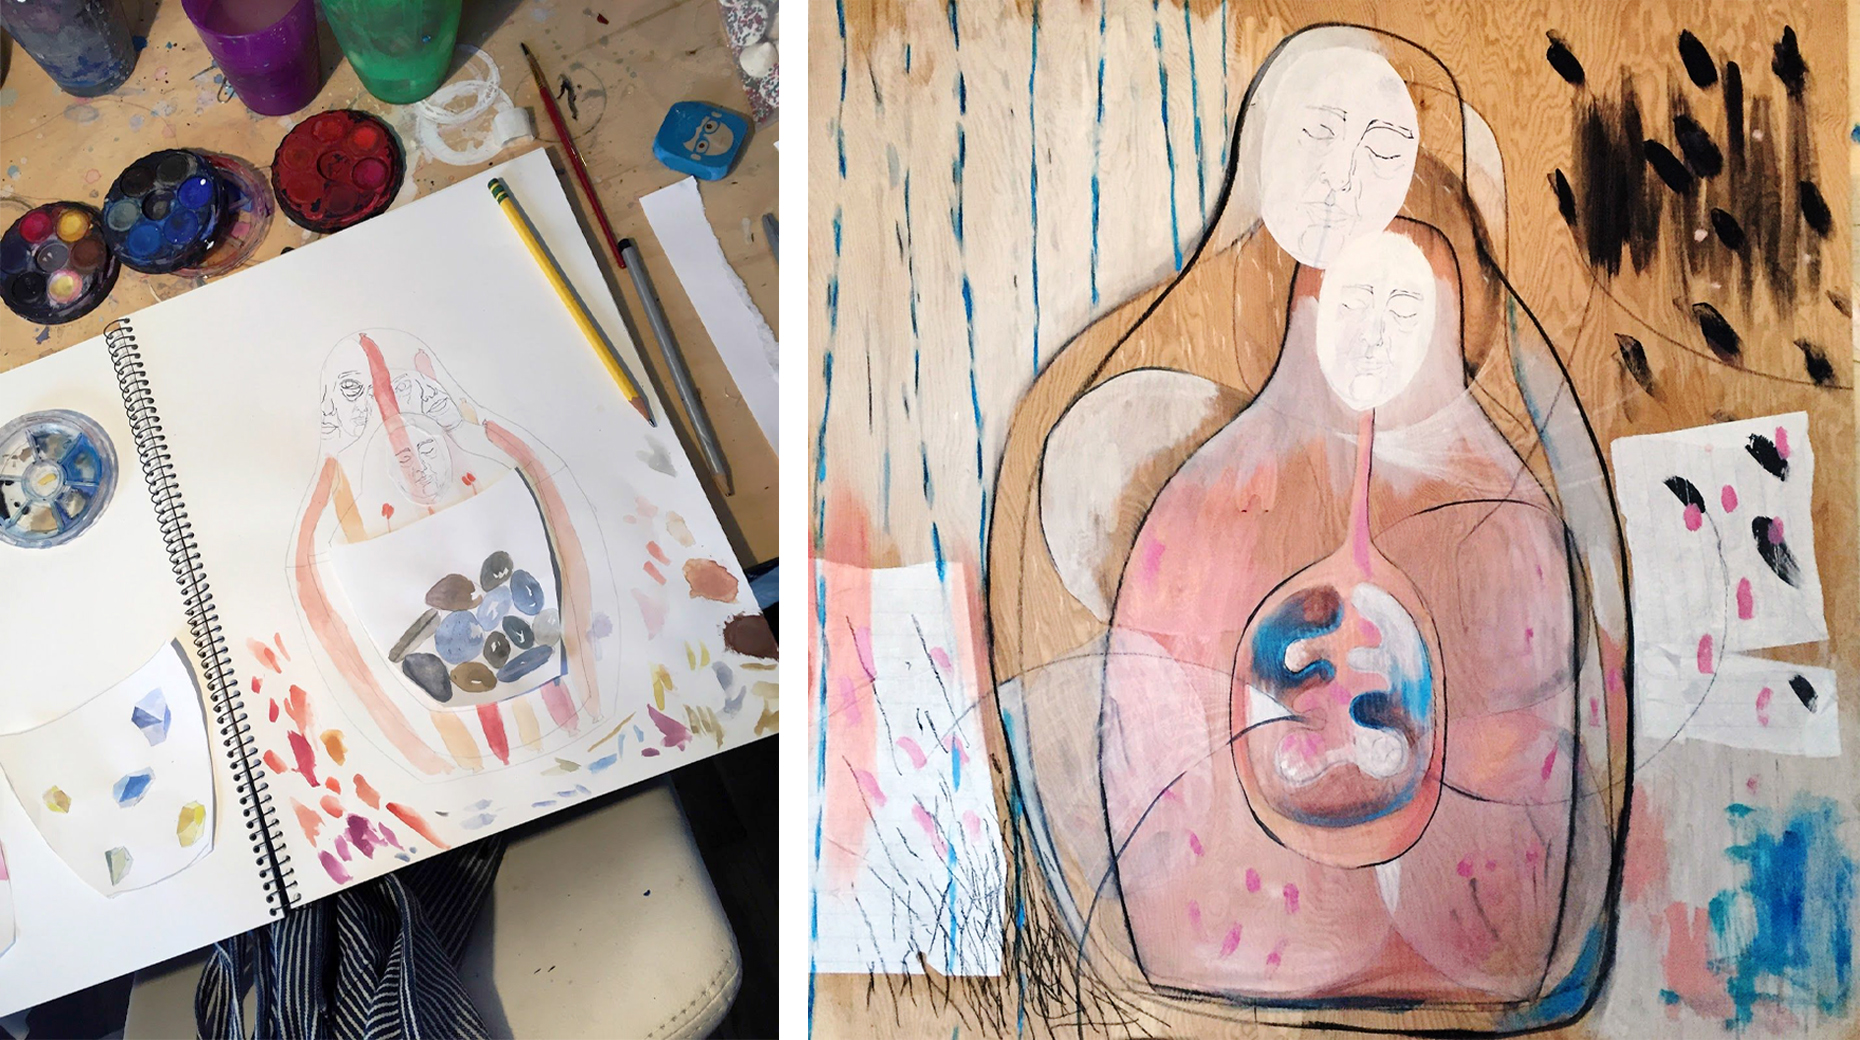 Notebook and Painting by Amada Estabillo